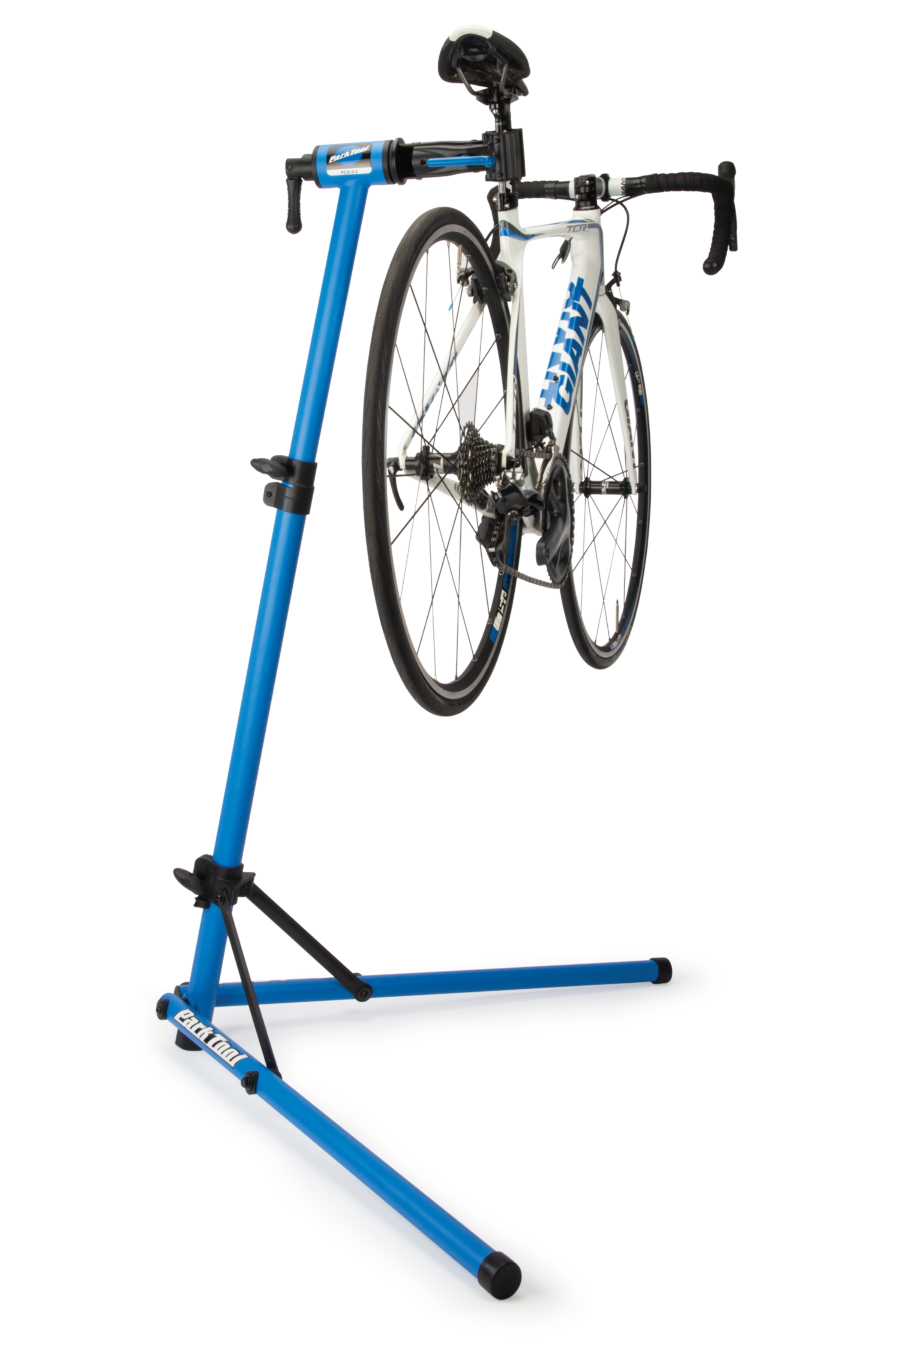 Park Tool PCS-9.2 Home Mechanic Repair Stand with bike lifted, enlarged